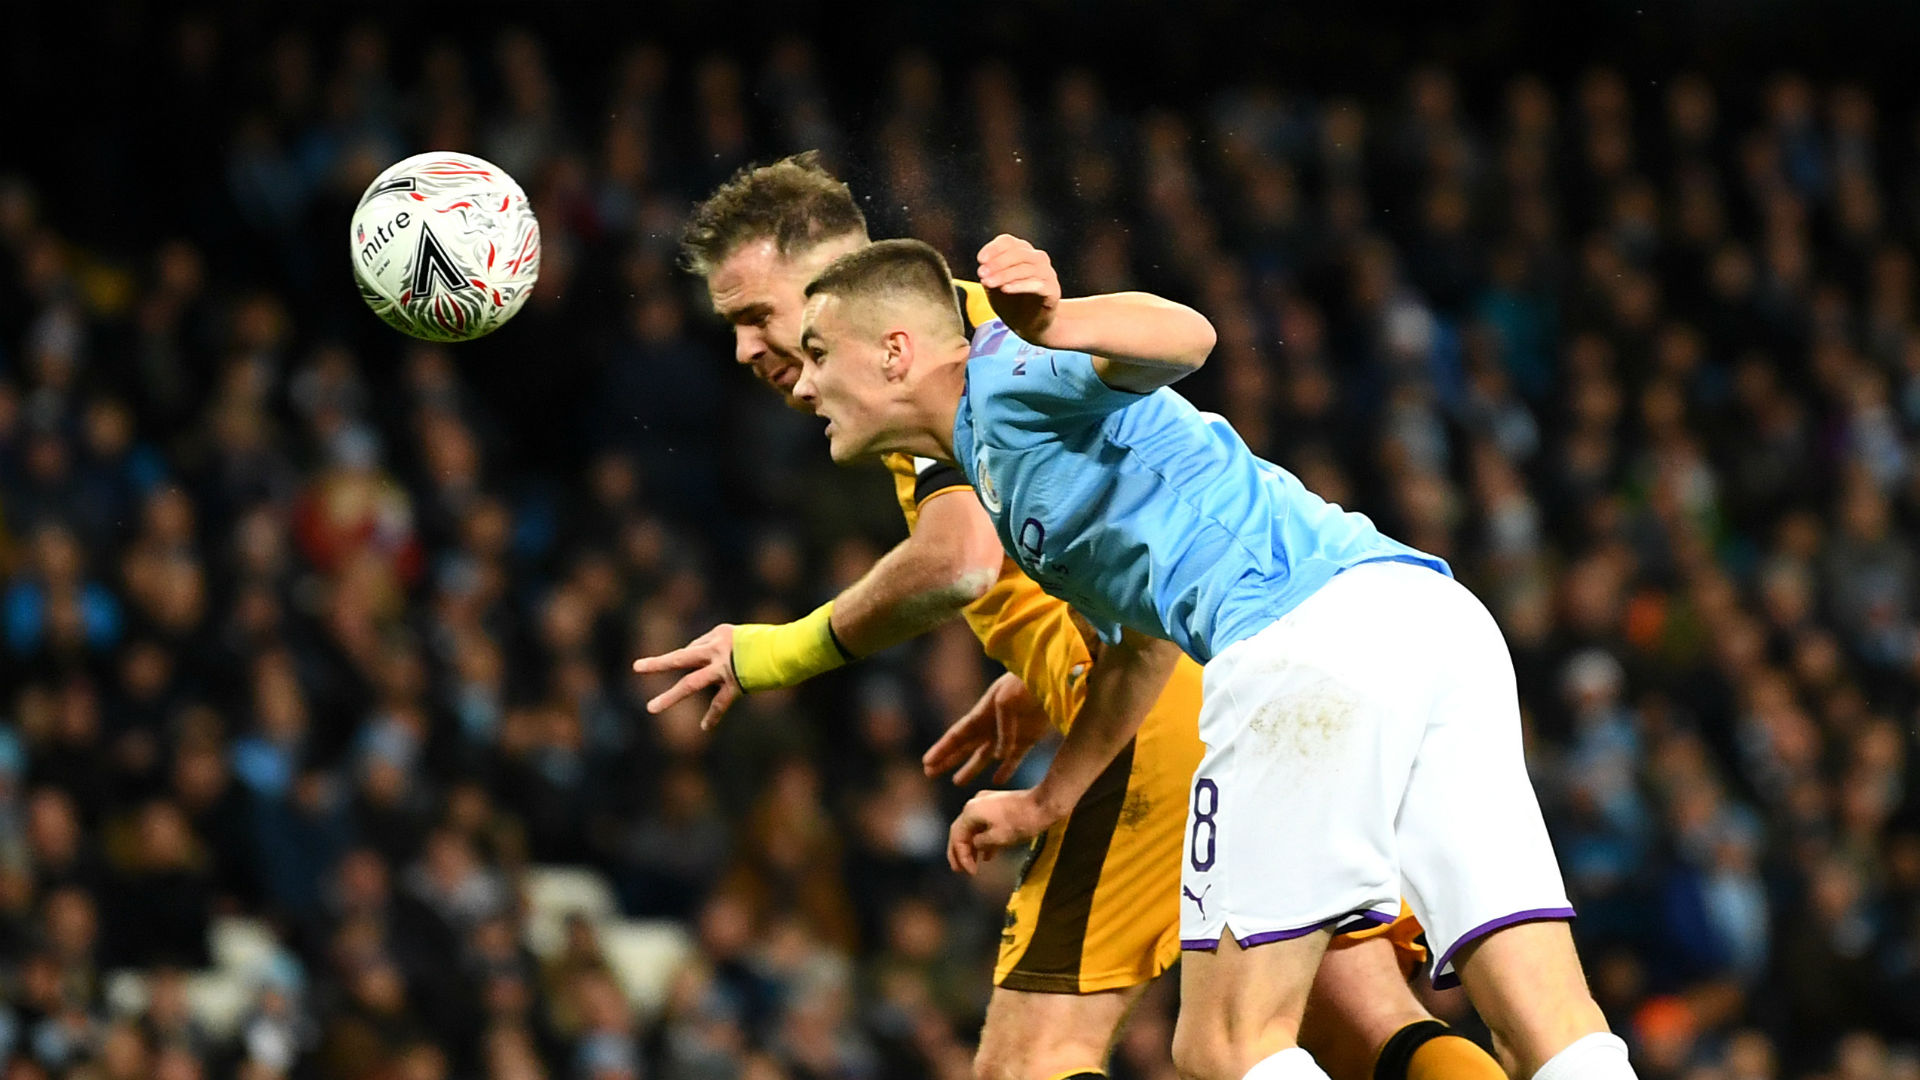 Manchester City 4-1 Port Vale: Holders prevail after Pope enjoys his FA Cup moment